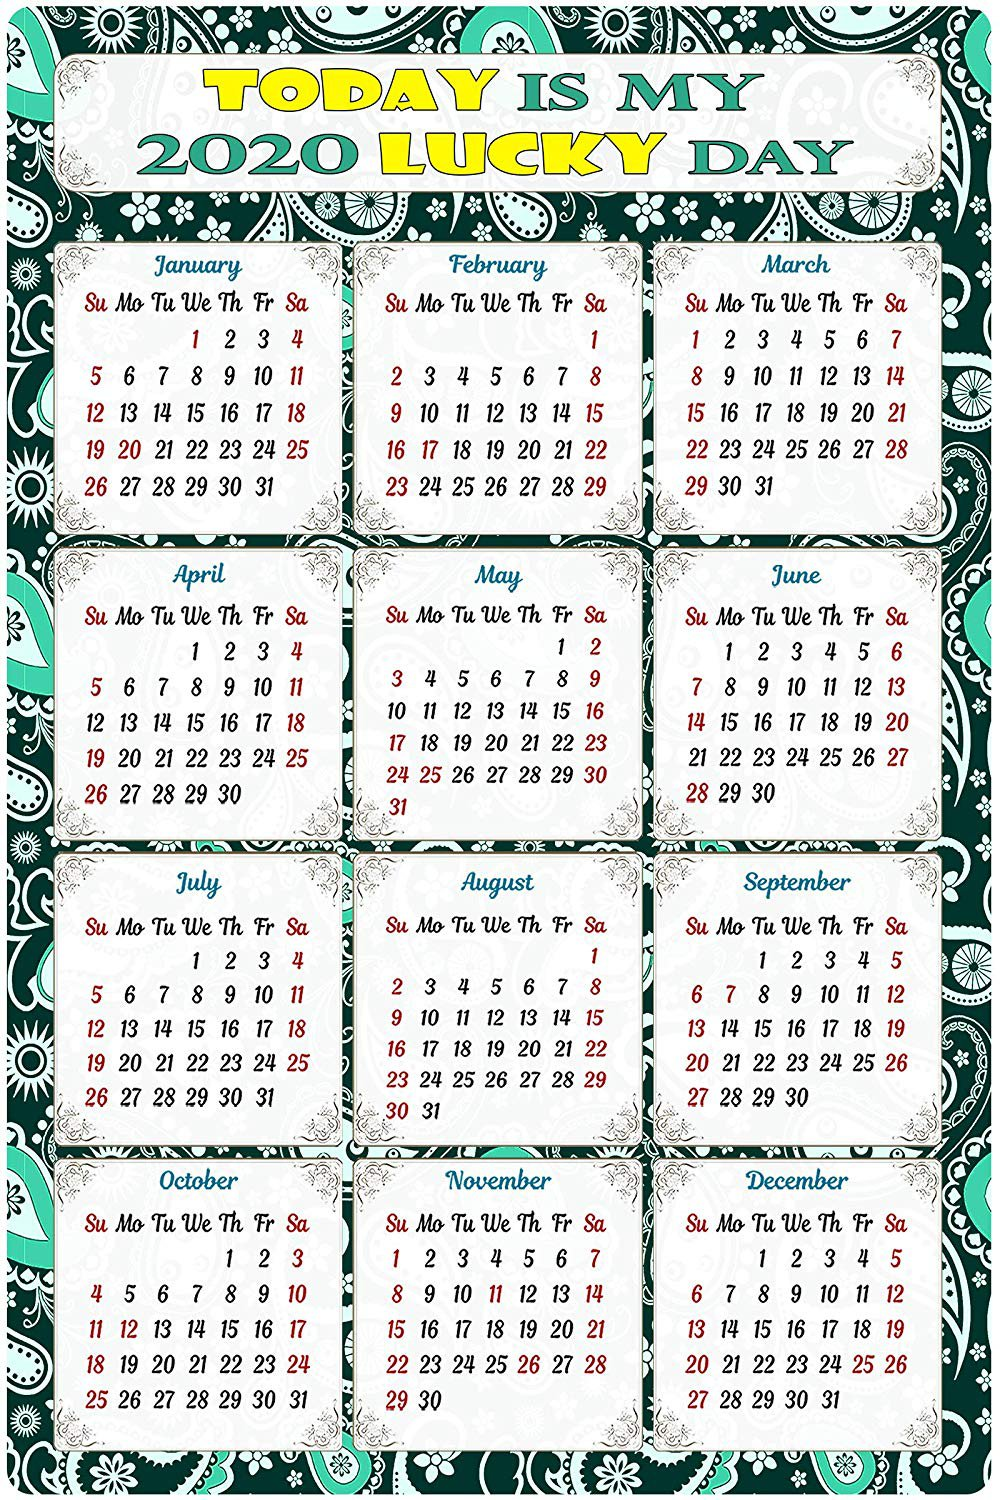 2020 Magnetic Calendar - Calendar Magnets - Today is My Lucky Day - Edition #TN06